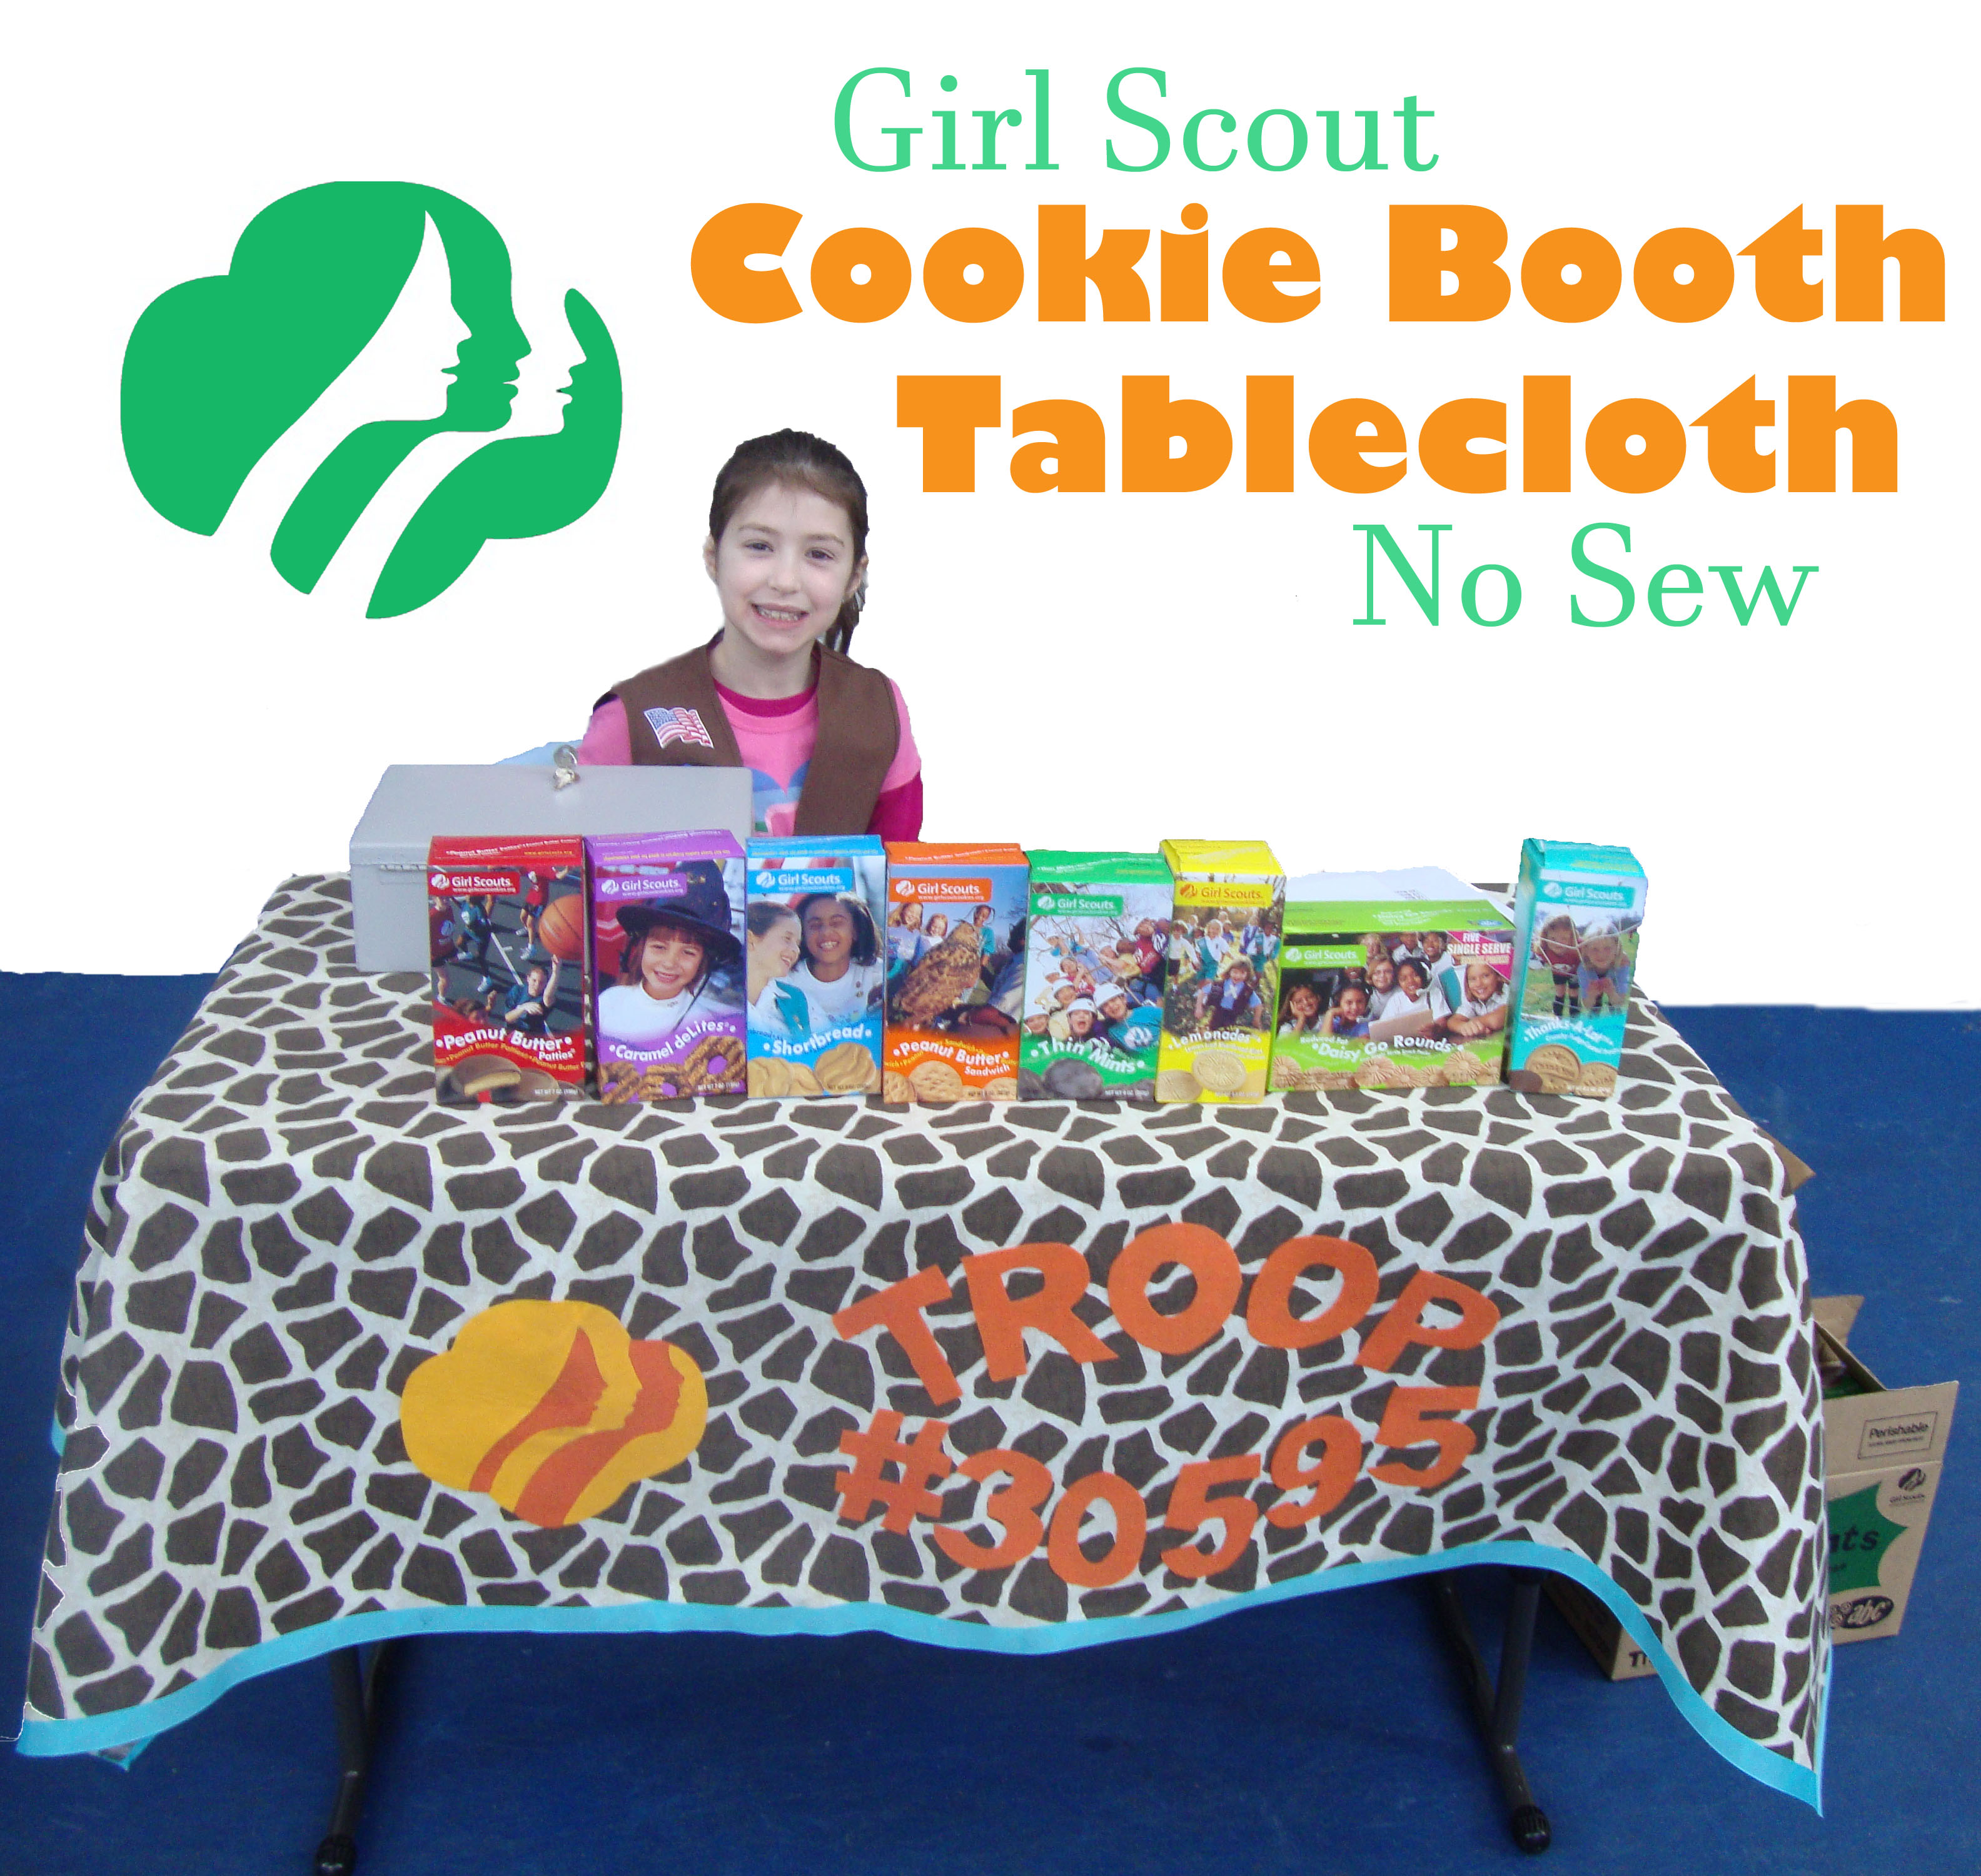 No Sew Girl Scout Tablecloth